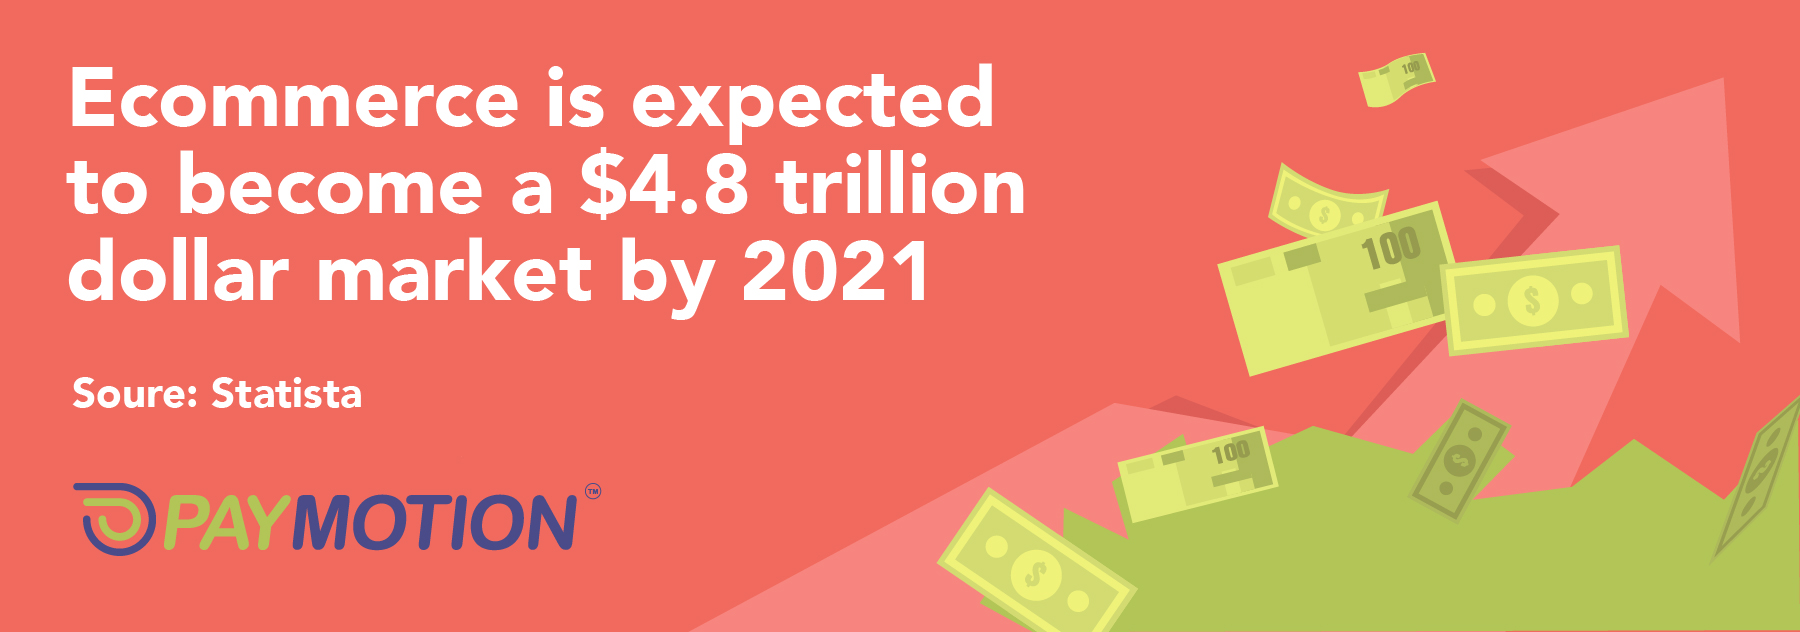 Ecommerce is expected to become a $4.8 trillion dollar market by 2021.